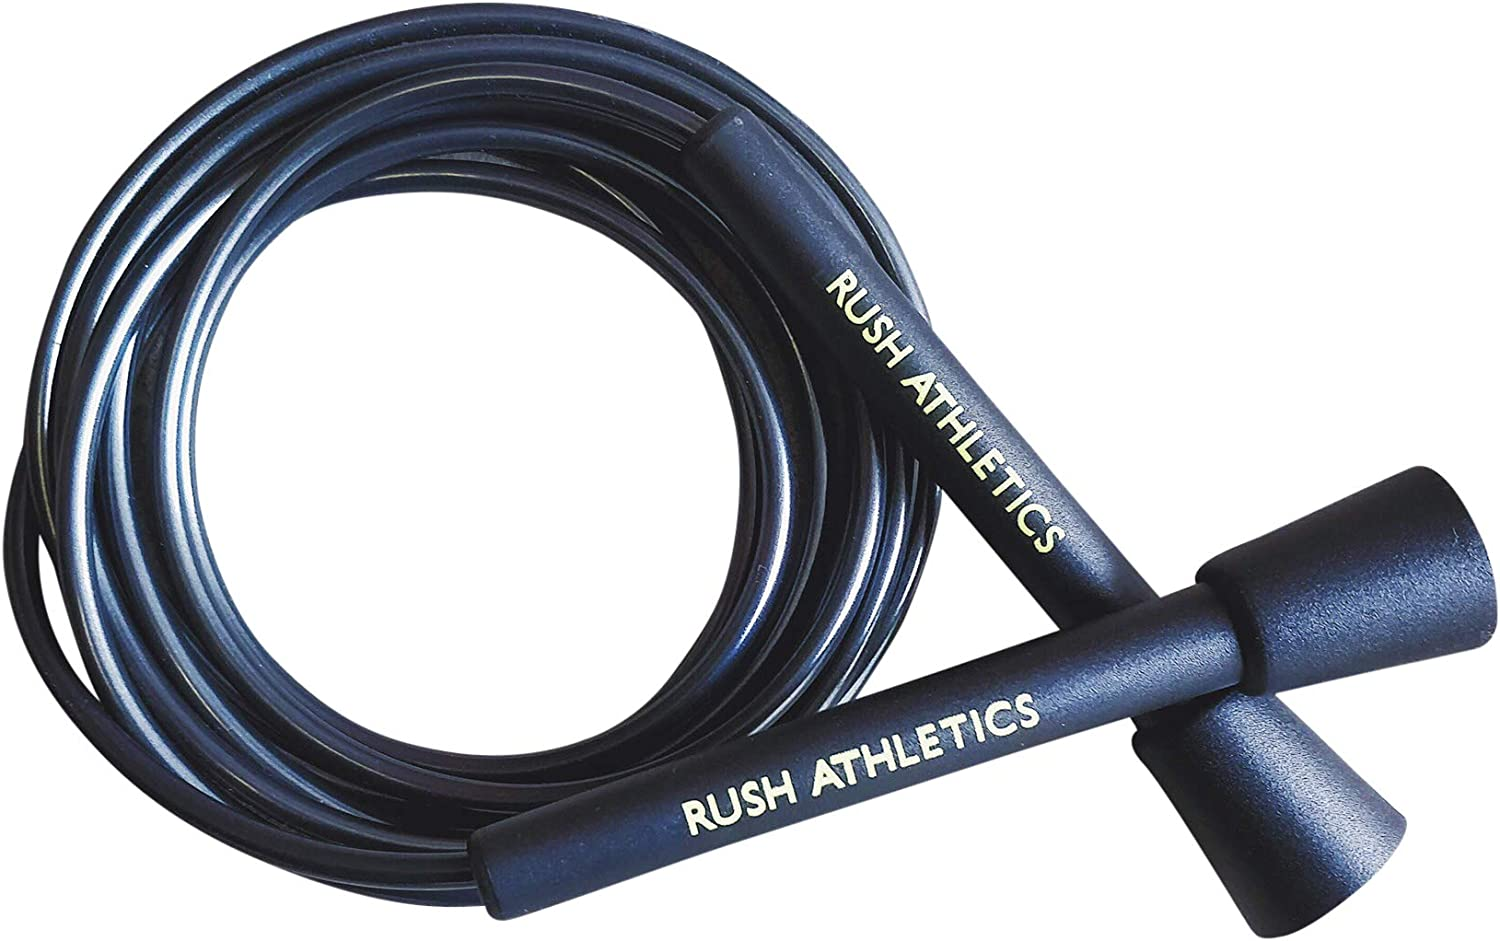 RUSH ATHLETICS Speed Rope Speed Agility Condition Best for Boxing MMA Cardio Fitness Training Adjustable 10ft Jump Rope Sold